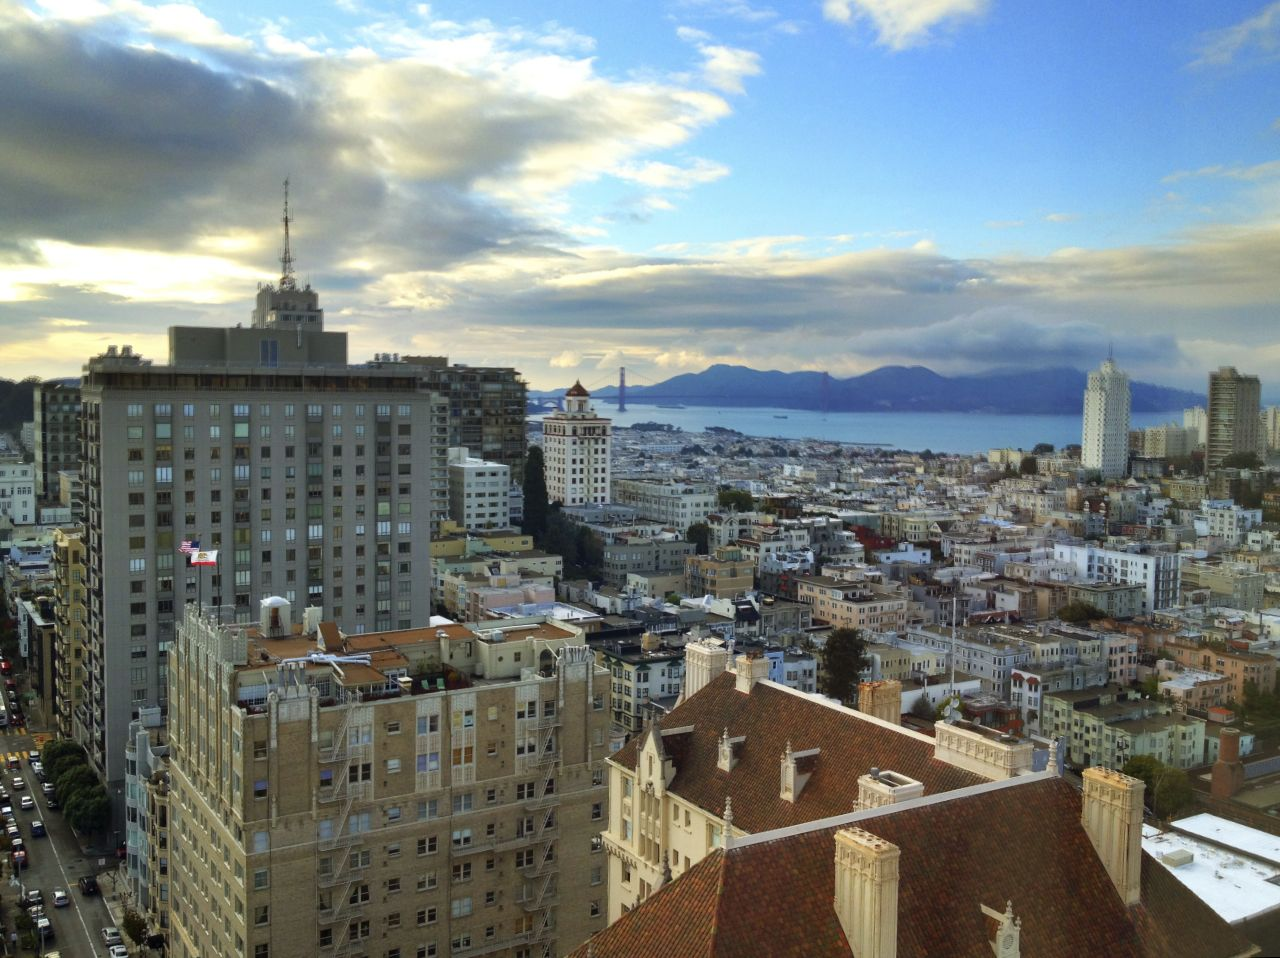 View from the top of the Fairmont Hotel in San Fran.